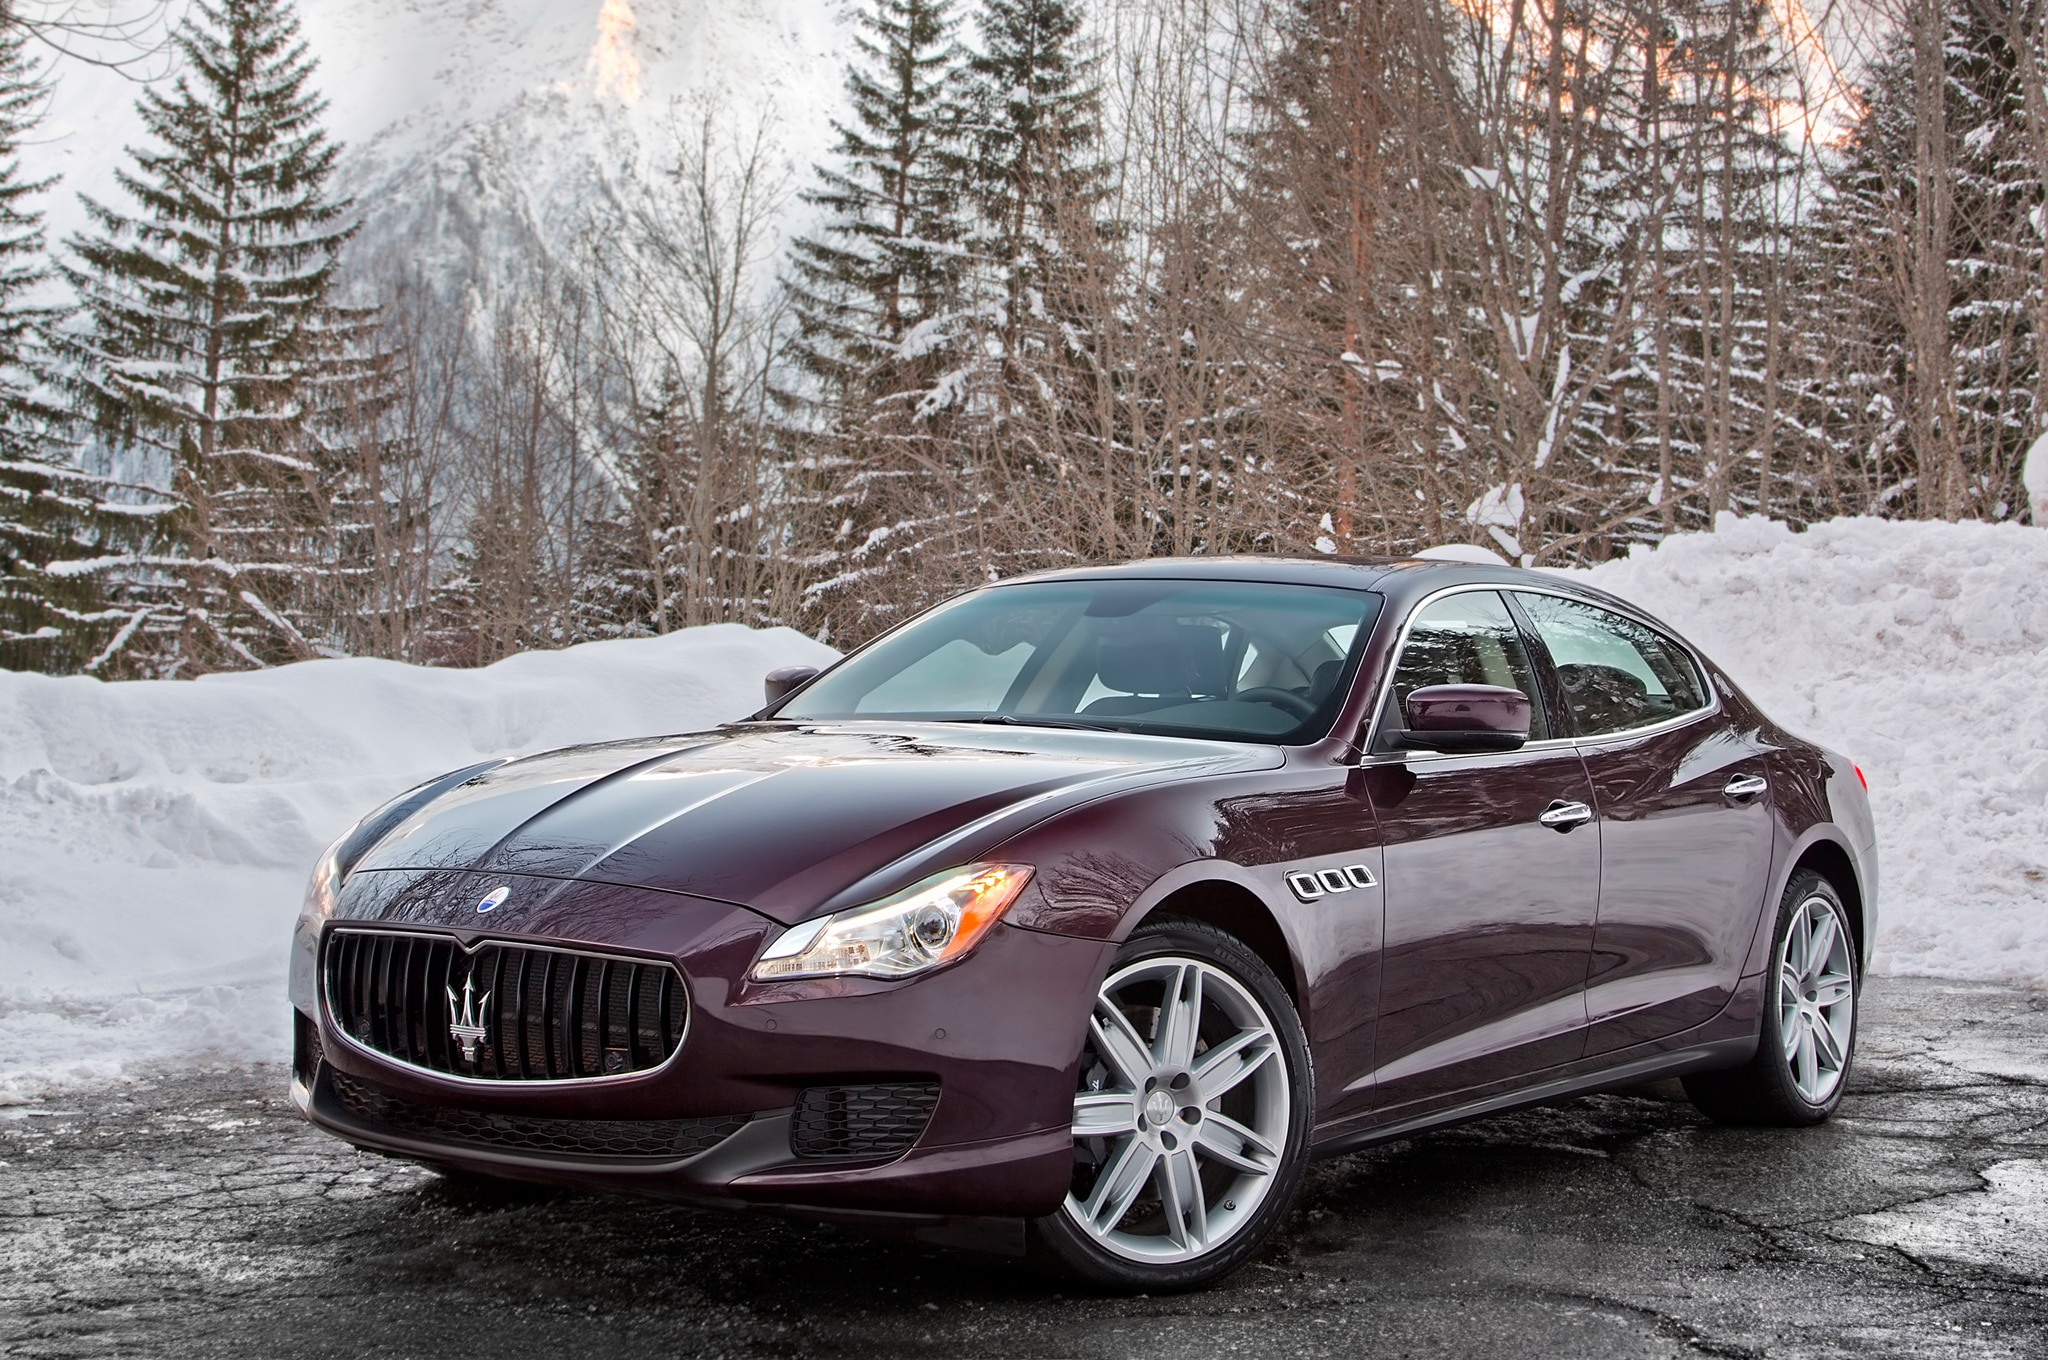 2014 maserati quattroporte s q4 around the block automobile. Black Bedroom Furniture Sets. Home Design Ideas